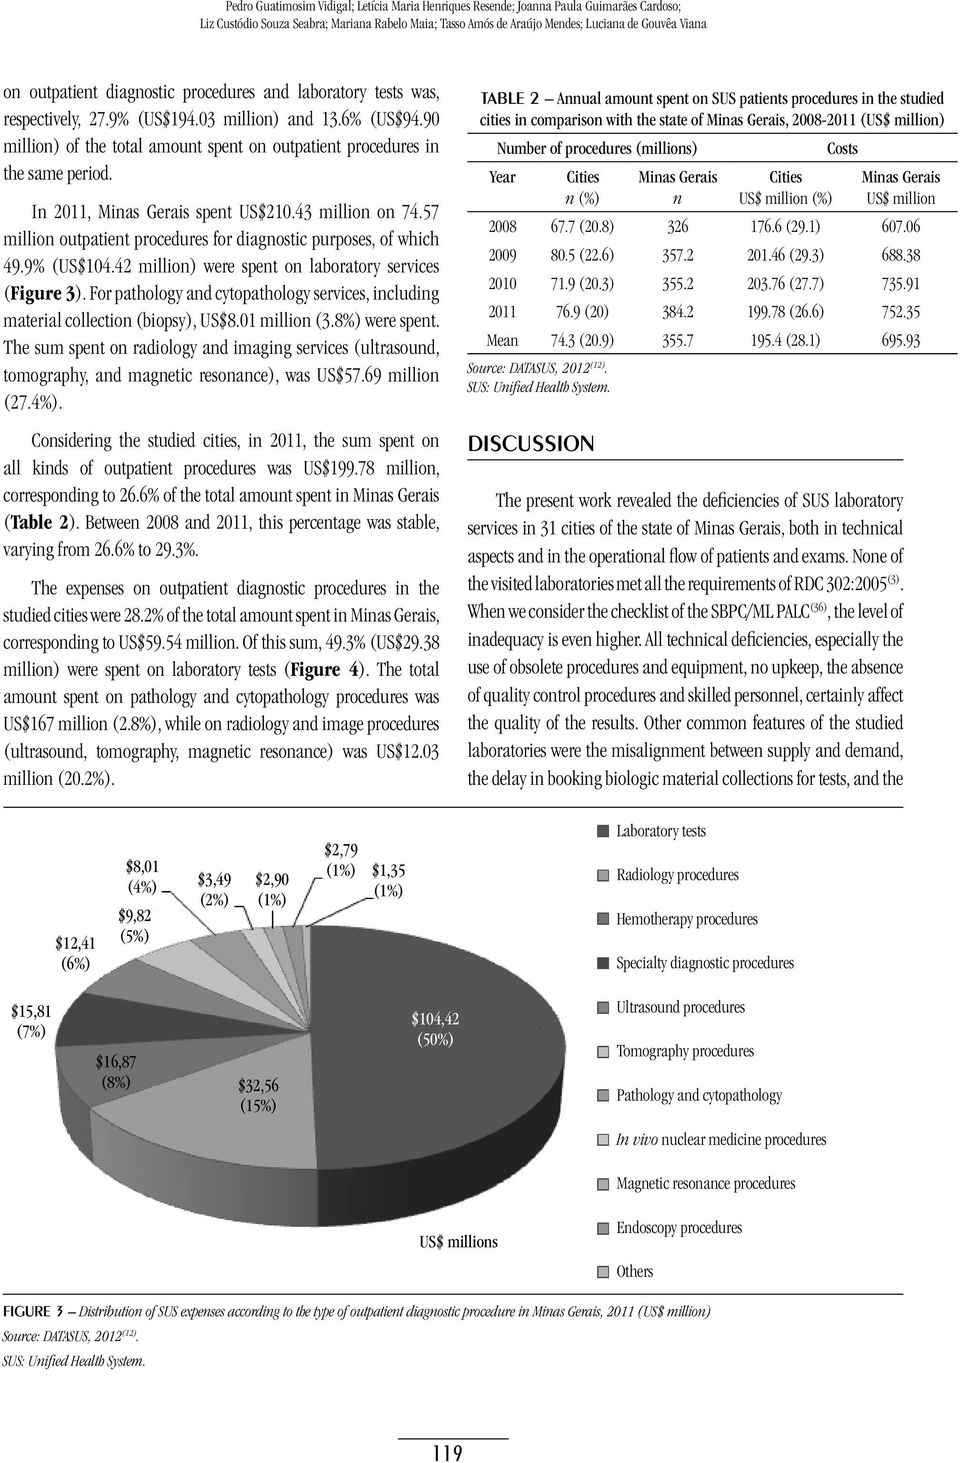 In 2011, Minas Gerais spent US$210.43 million on 74.57 million outpatient procedures for diagnostic purposes, of which 49.9% (US$104.42 million) were spent on laboratory services (Figure 3).